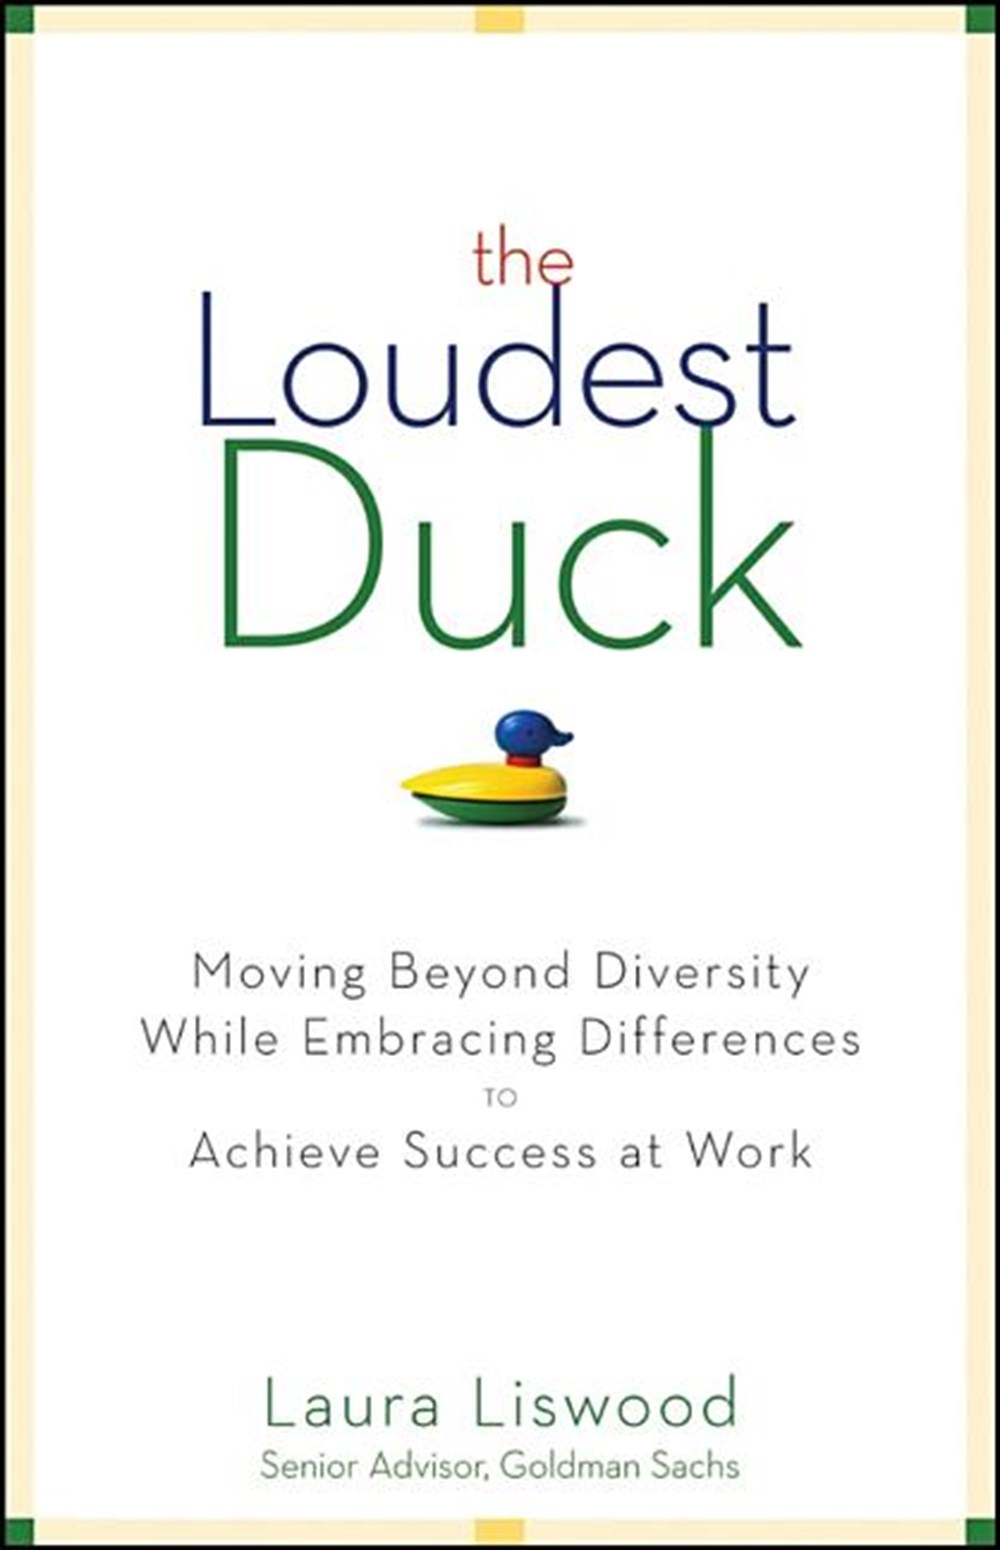 Loudest Duck Moving Beyond Diversity While Embracing Differences to Achieve Success at Work